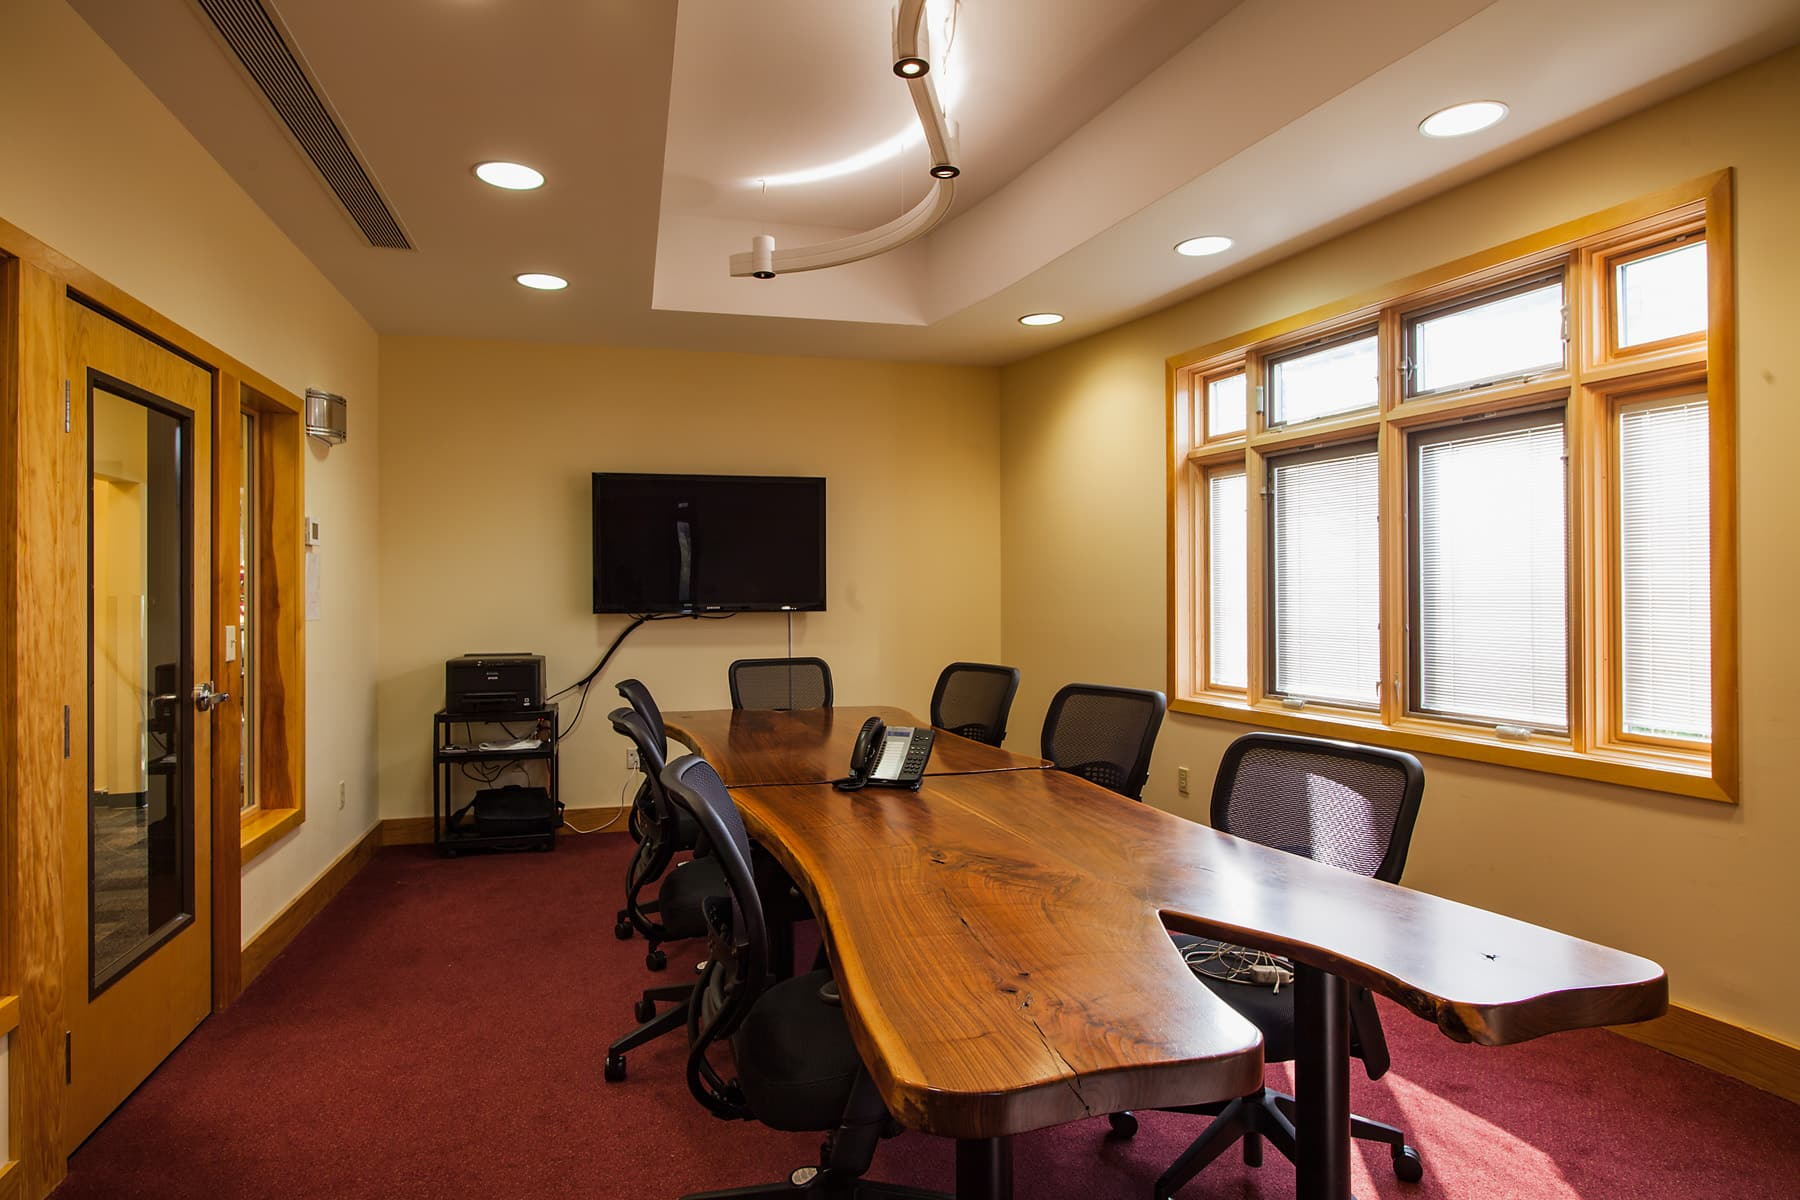 POA meeting room with natural wood table.